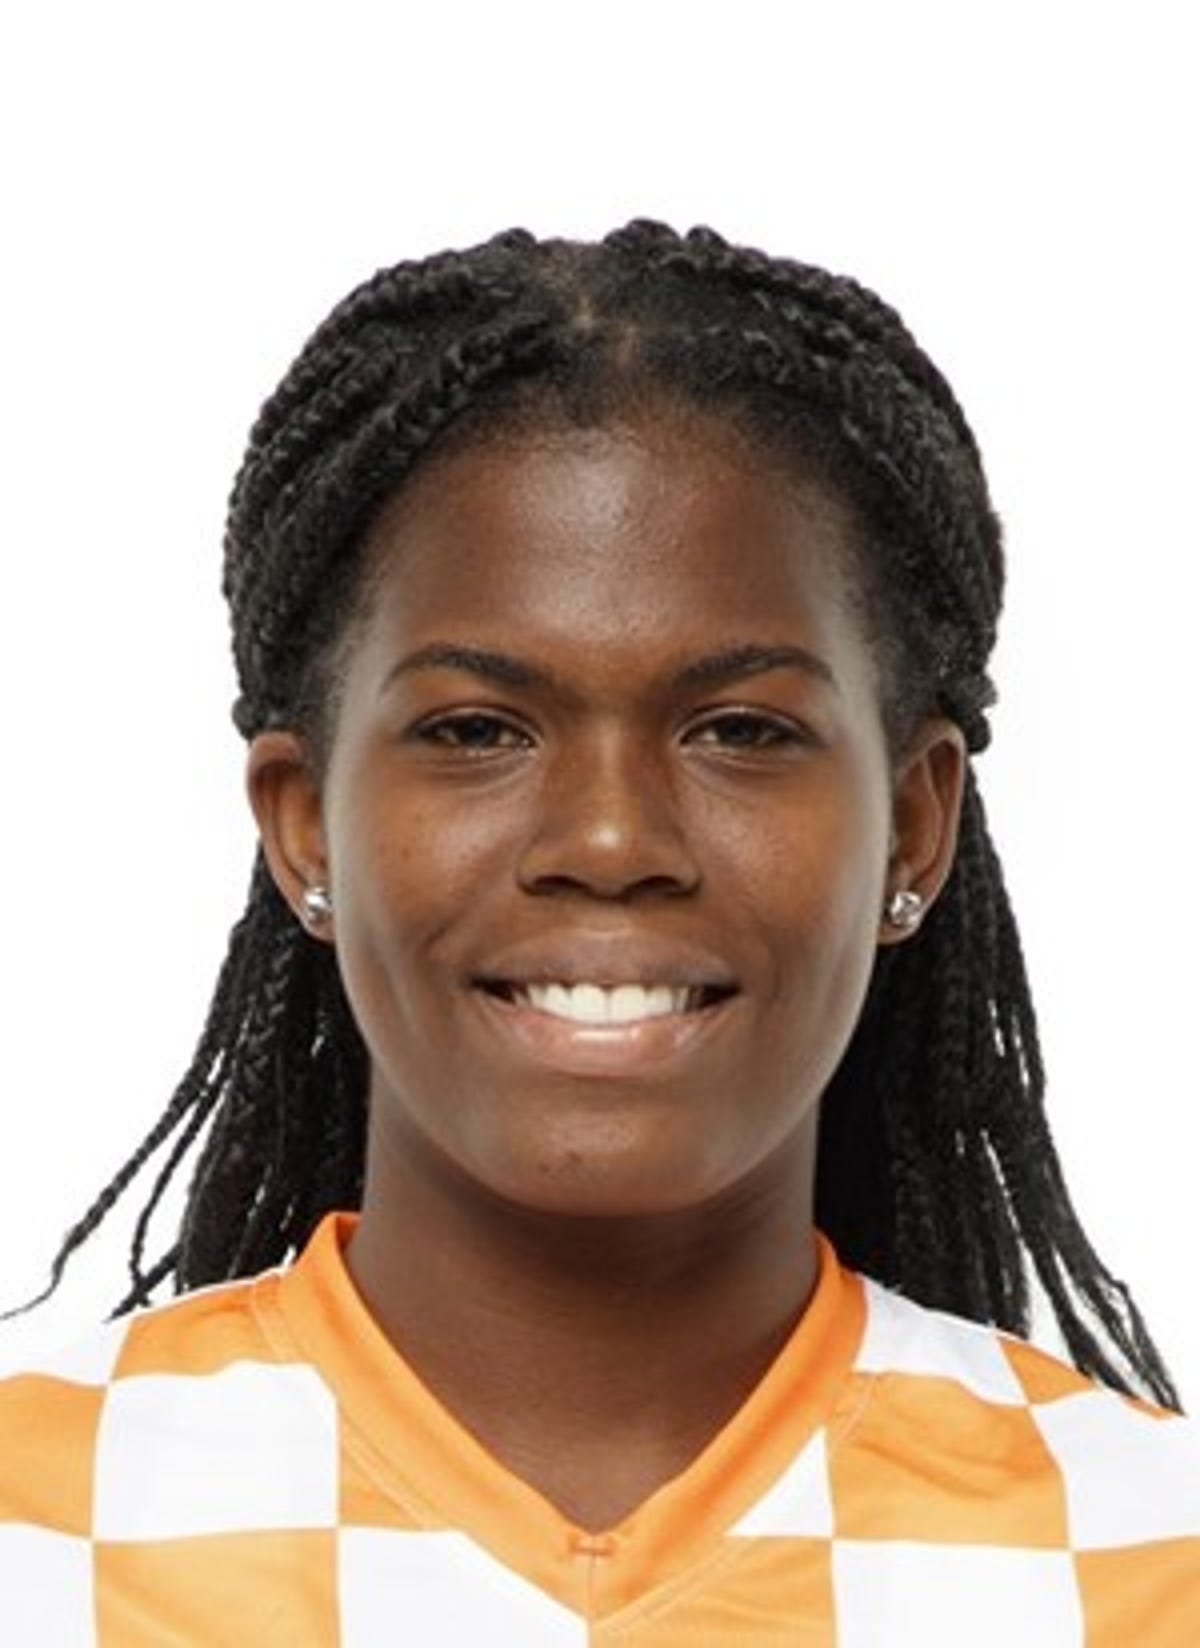 Soccer allowed Lady Vols' Khadija Shaw to escape violence in